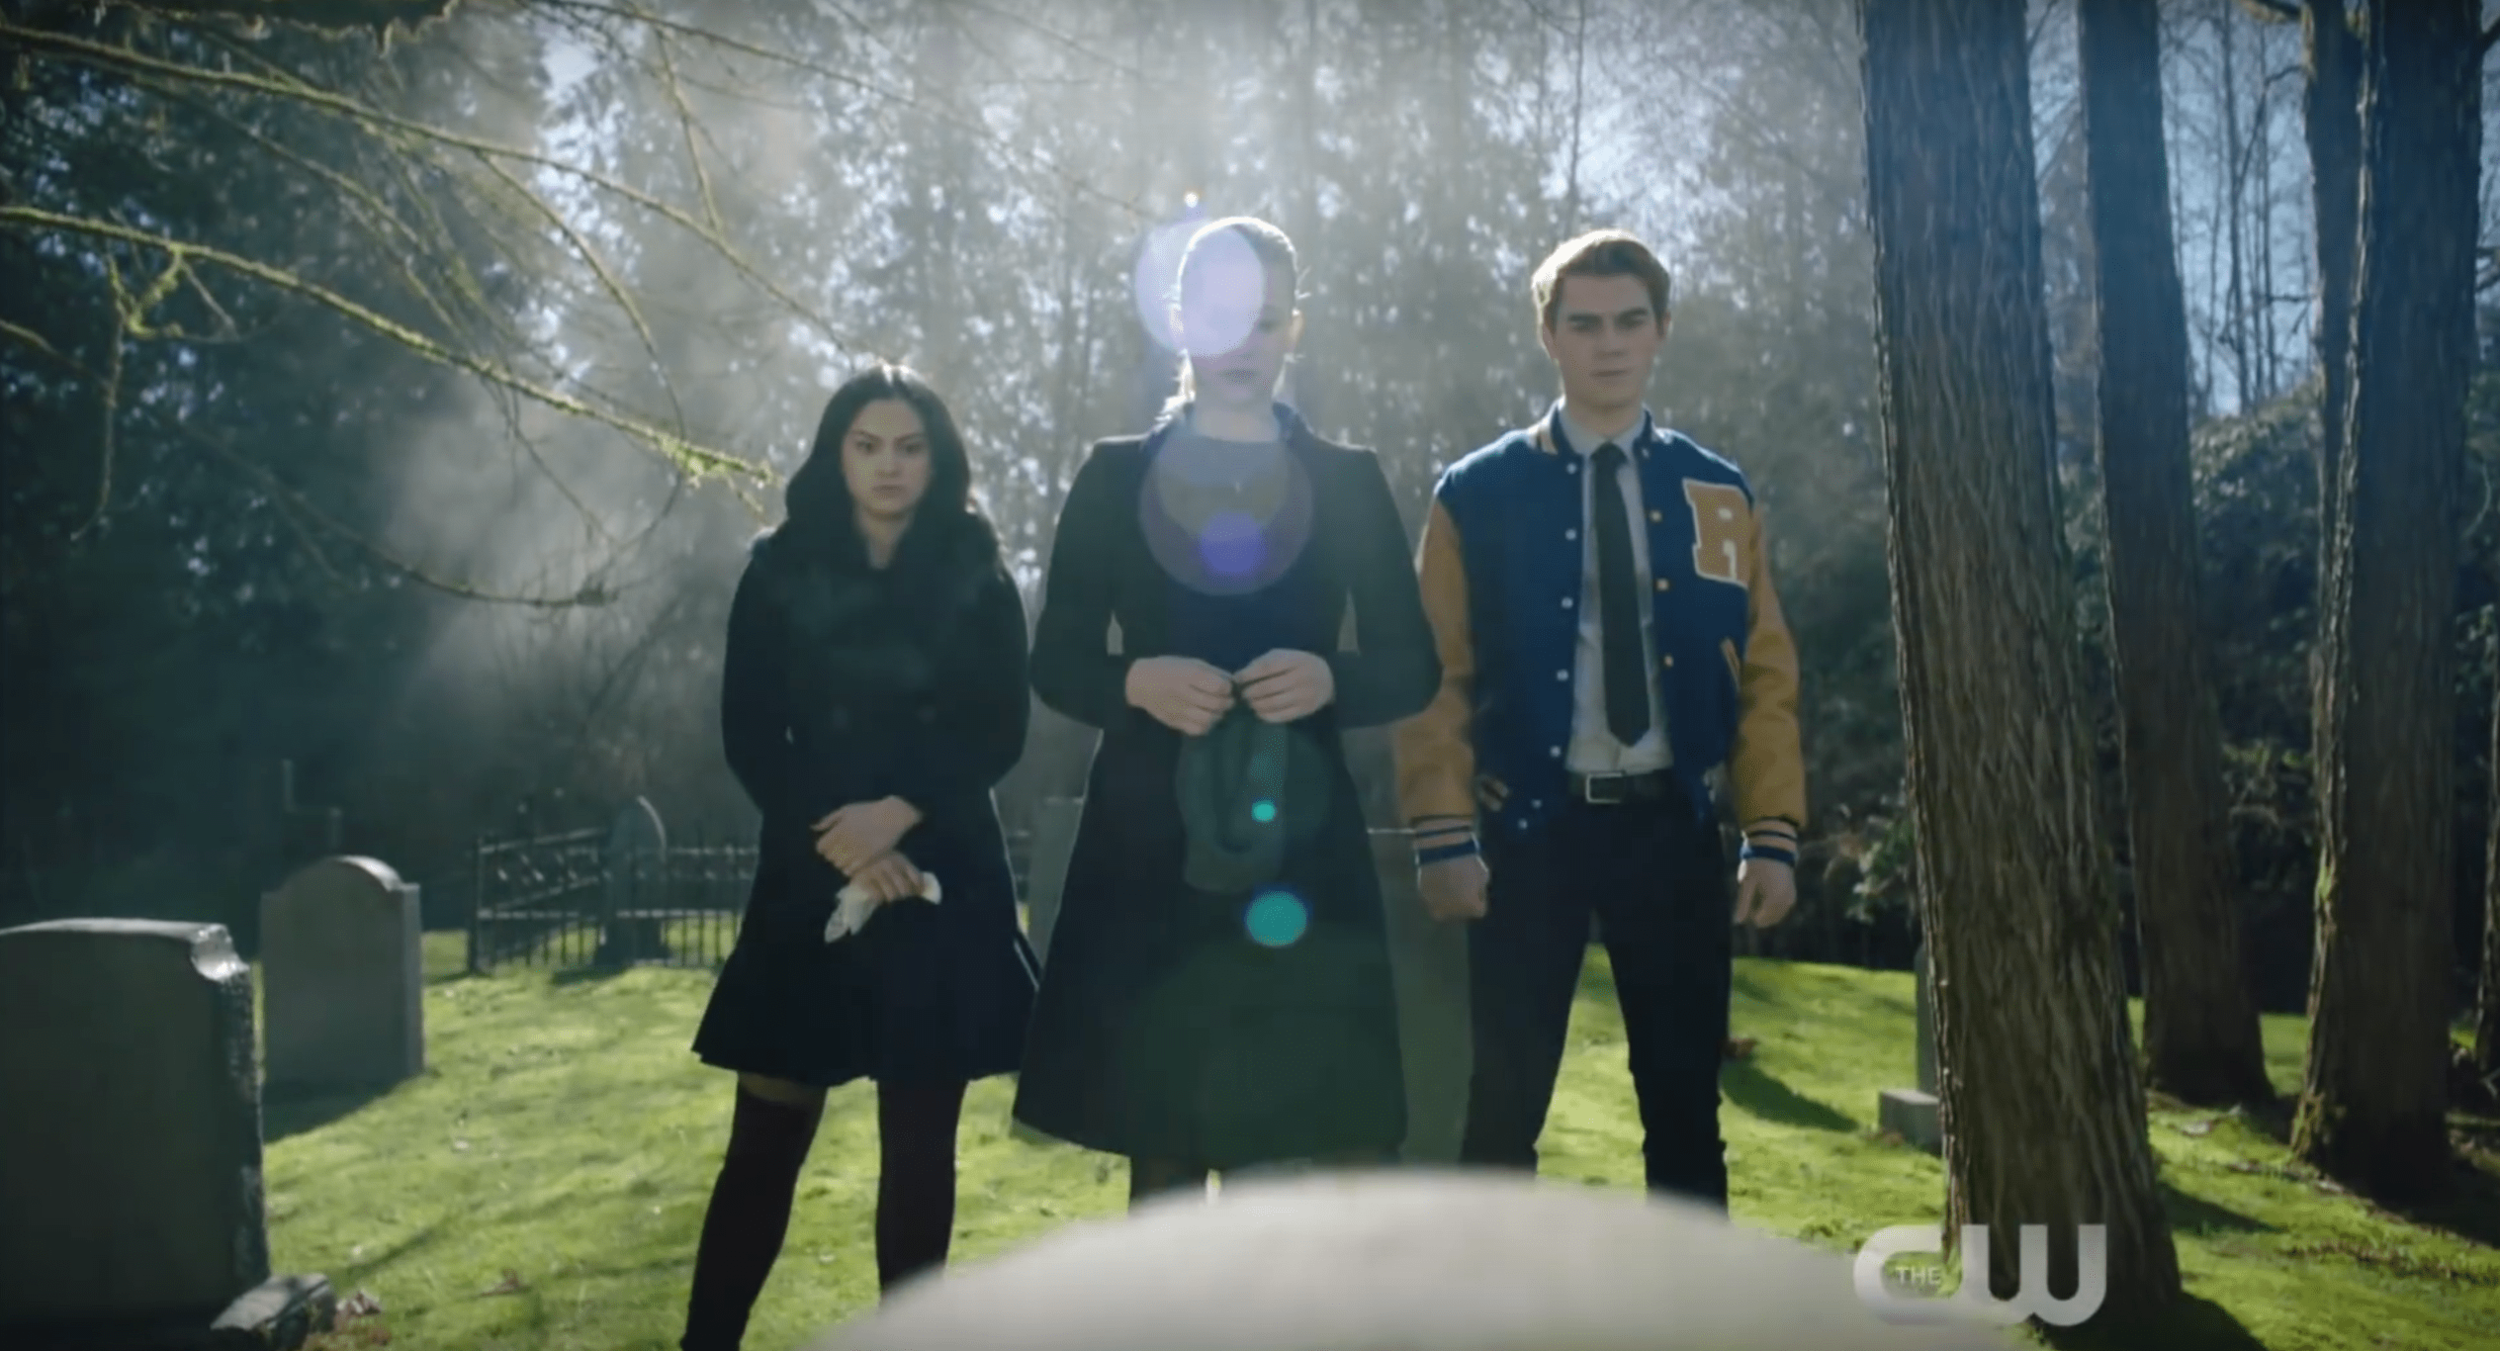 This is it, everyone. - We've finally reached the season two finale of Riverdale. Like the Serpents traveling as refugees from the Whyte Wyrm to the North, we have finally escaped. We are on the other side. We are free.